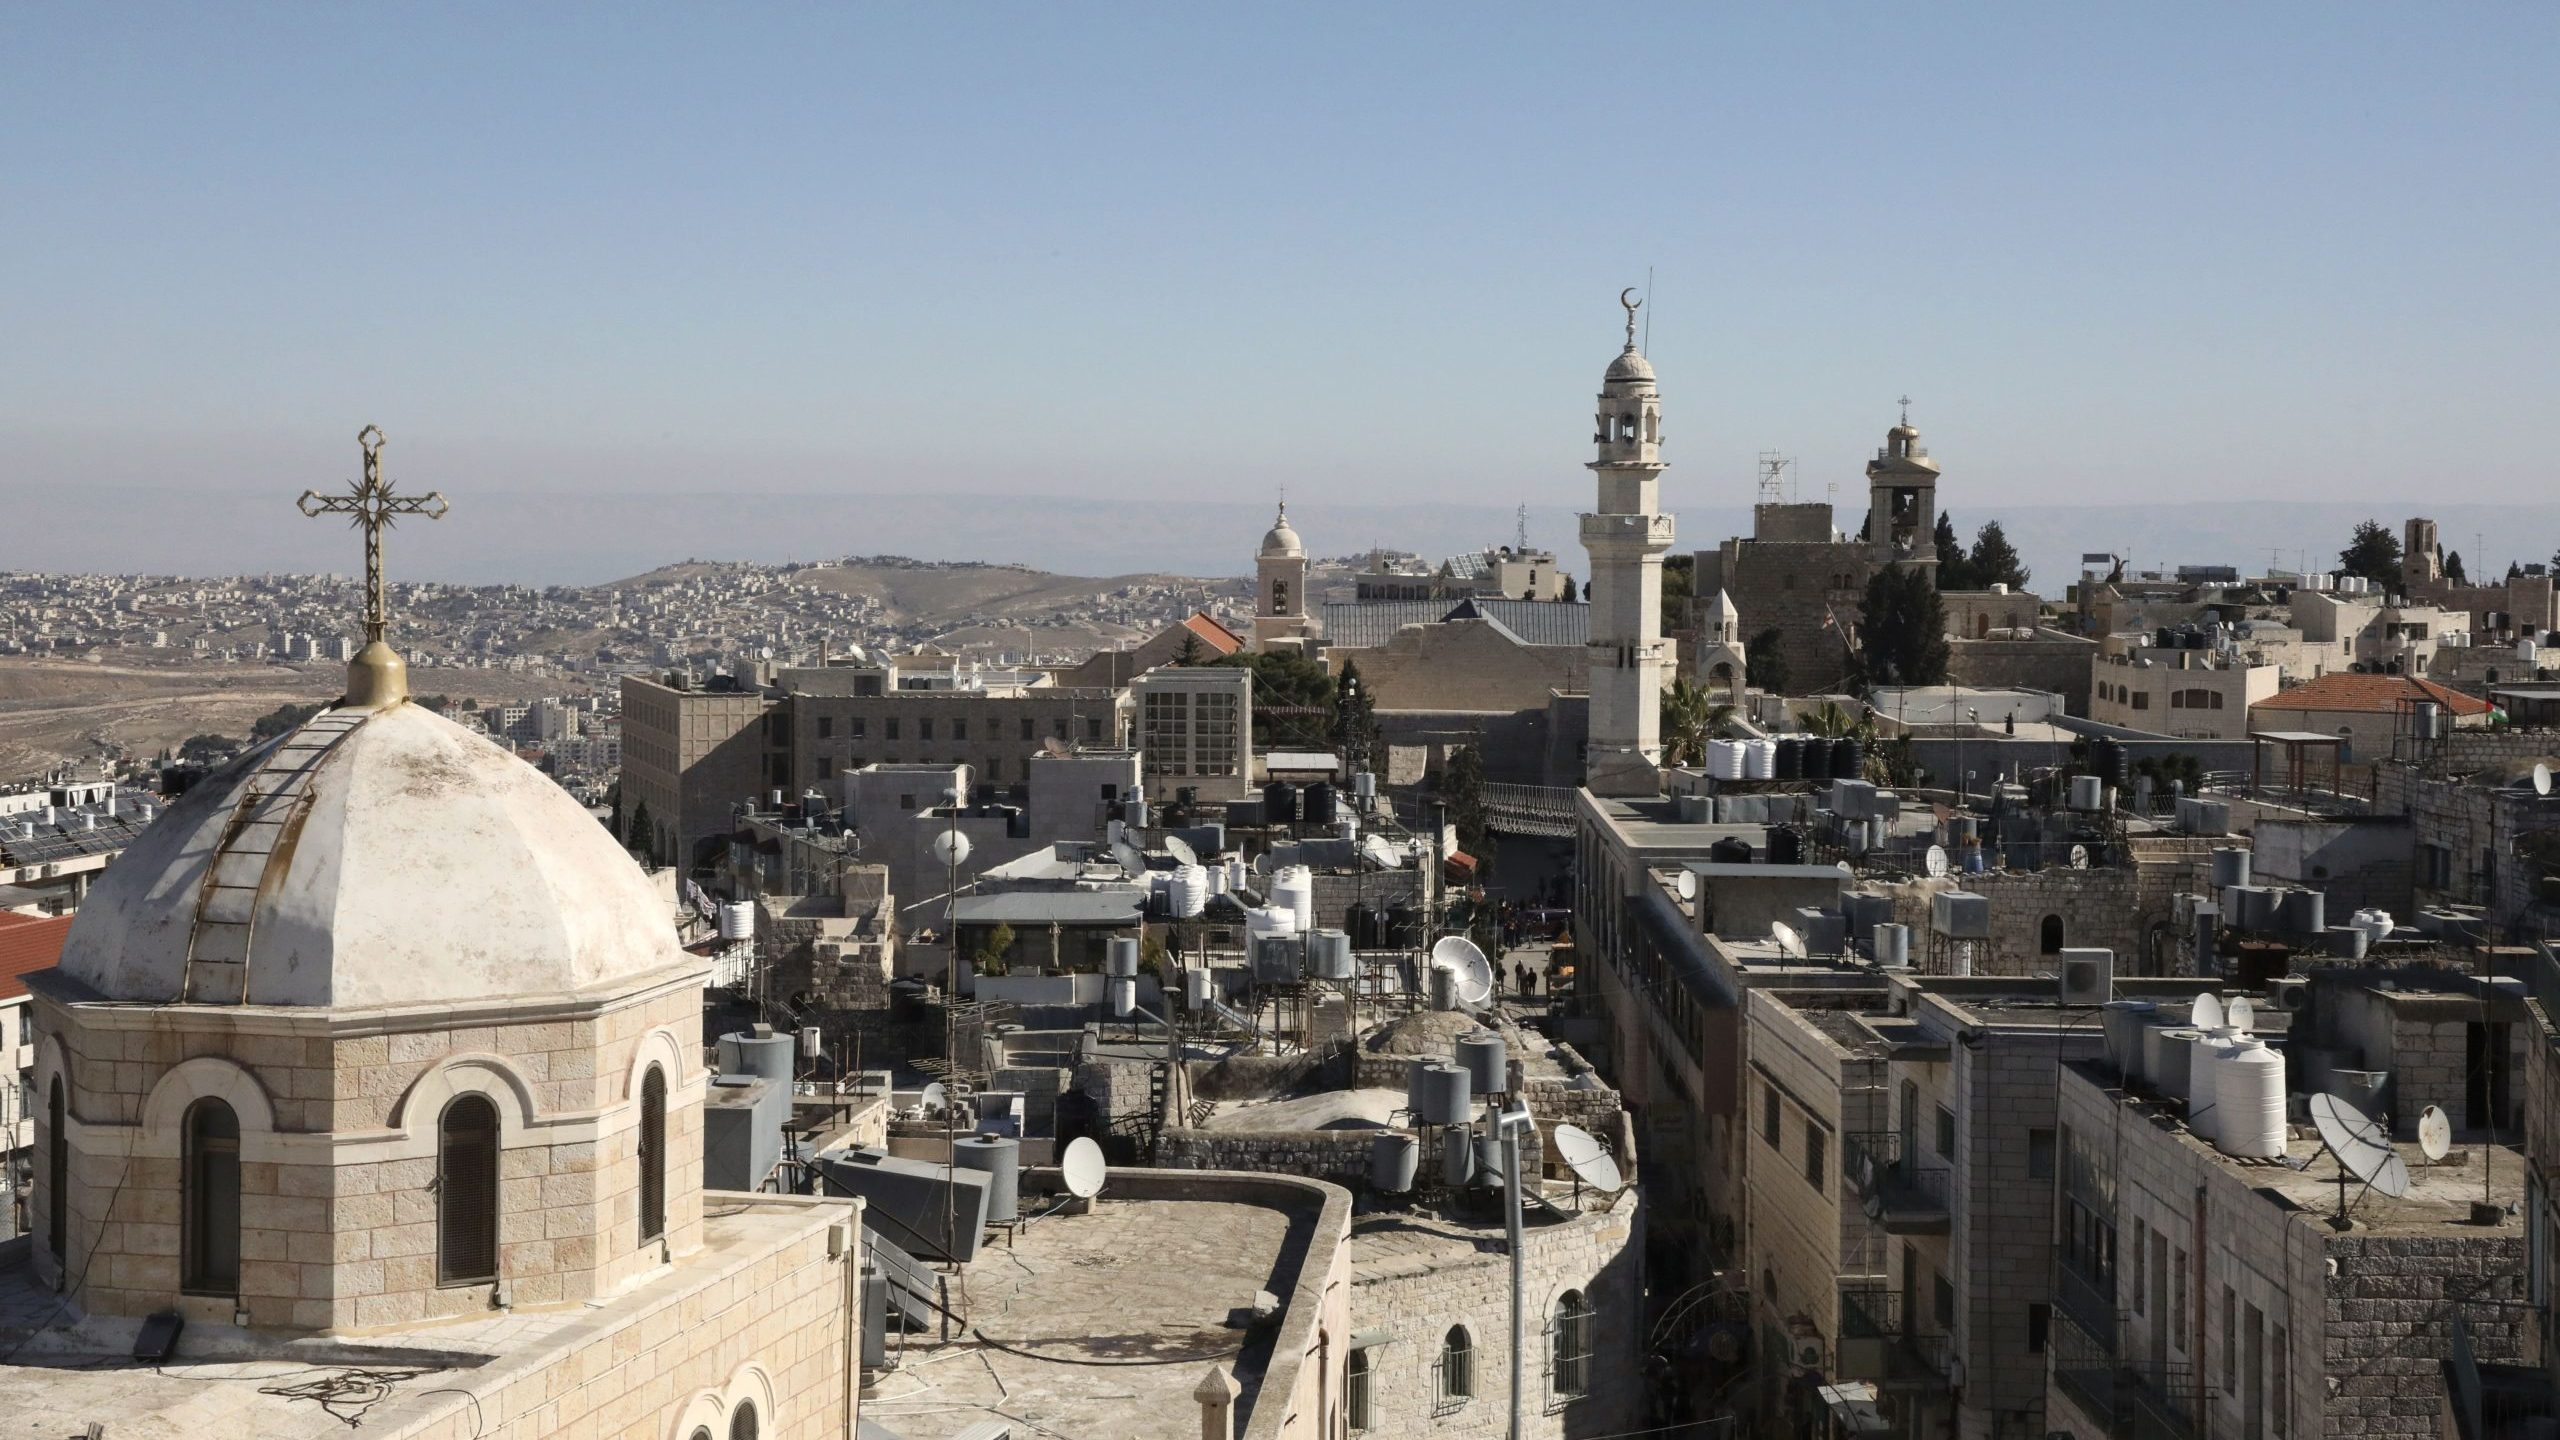 A general view of the West Bank biblical city of Bethlehem on Dec. 19, 2019, shows the minaret of a mosque and the Church of the Nativity, top right, the site where Christians believe Jesus was born. (Credit: HAZEM BADER/AFP via Getty Images)